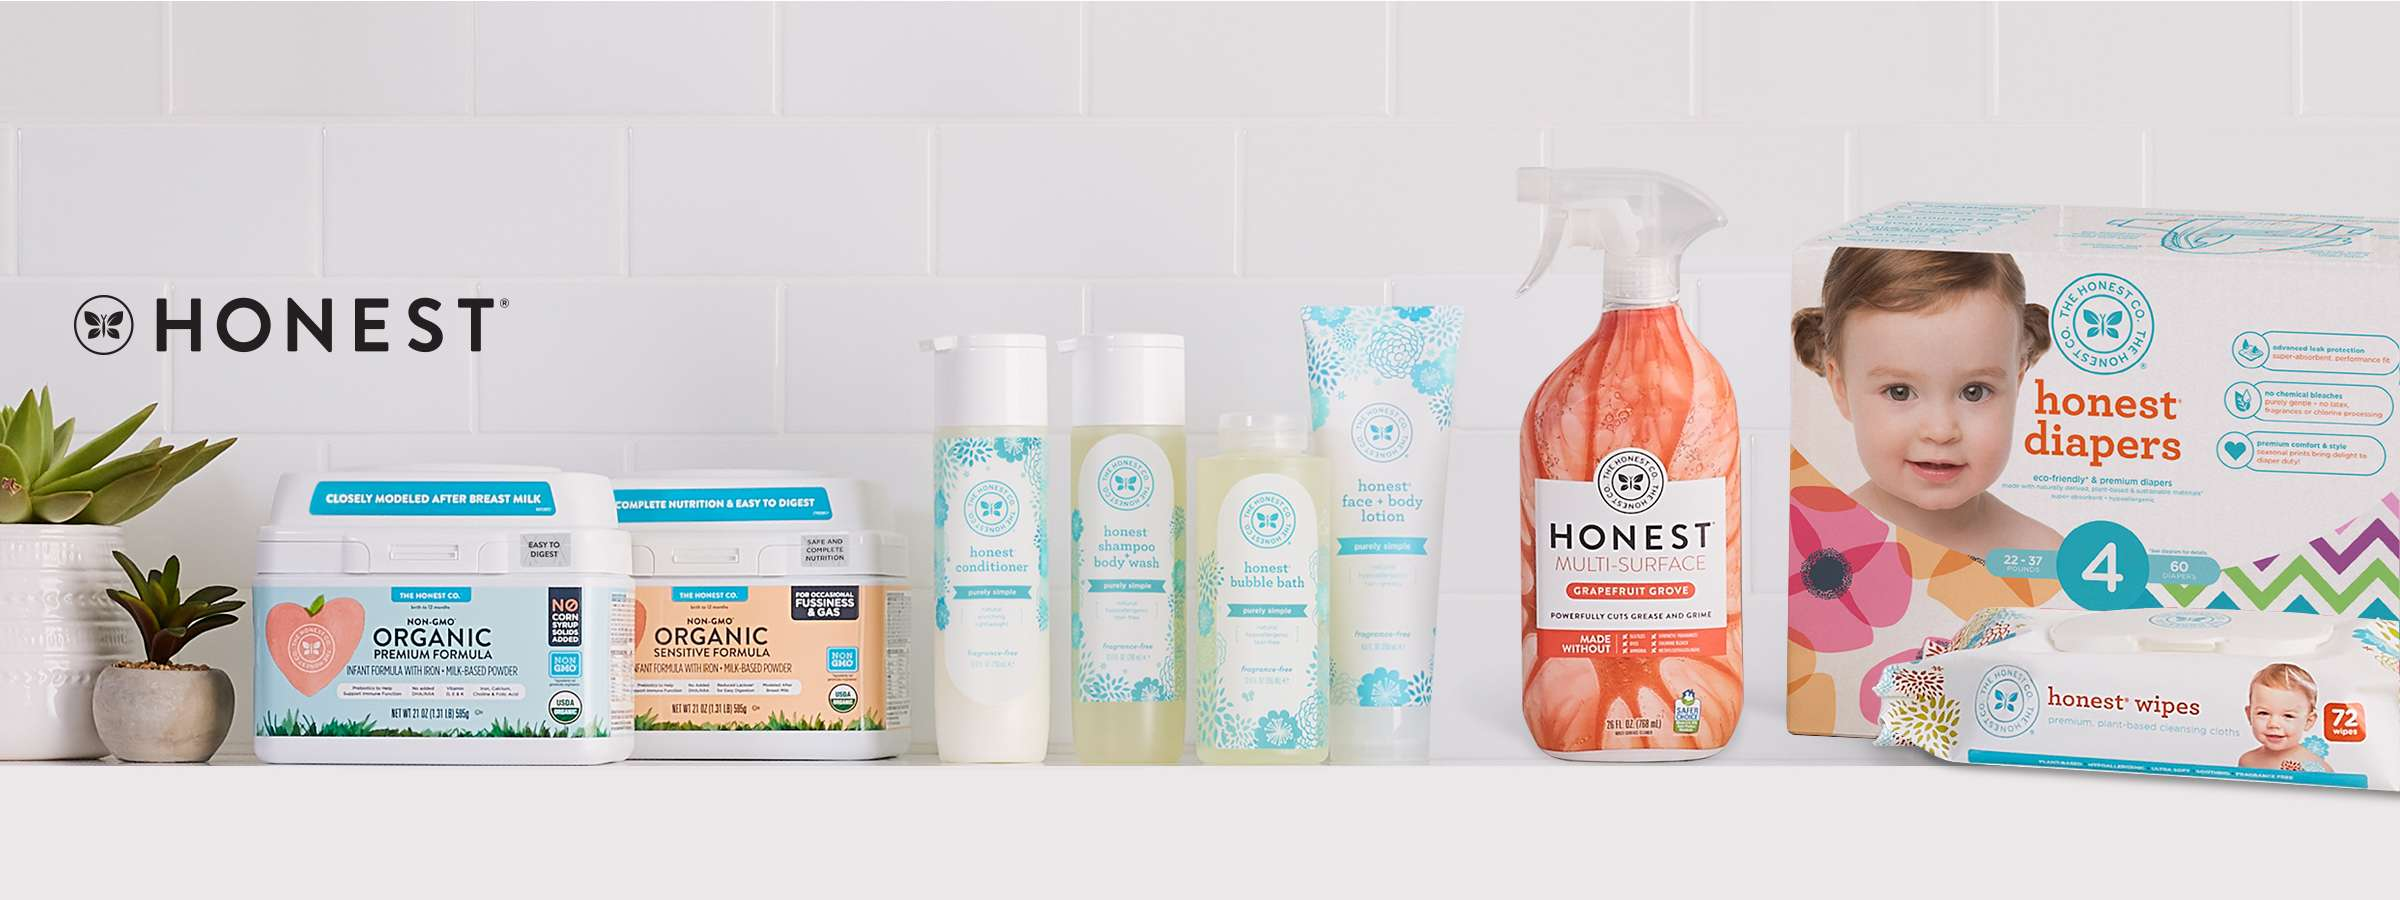 The Honest Company Target